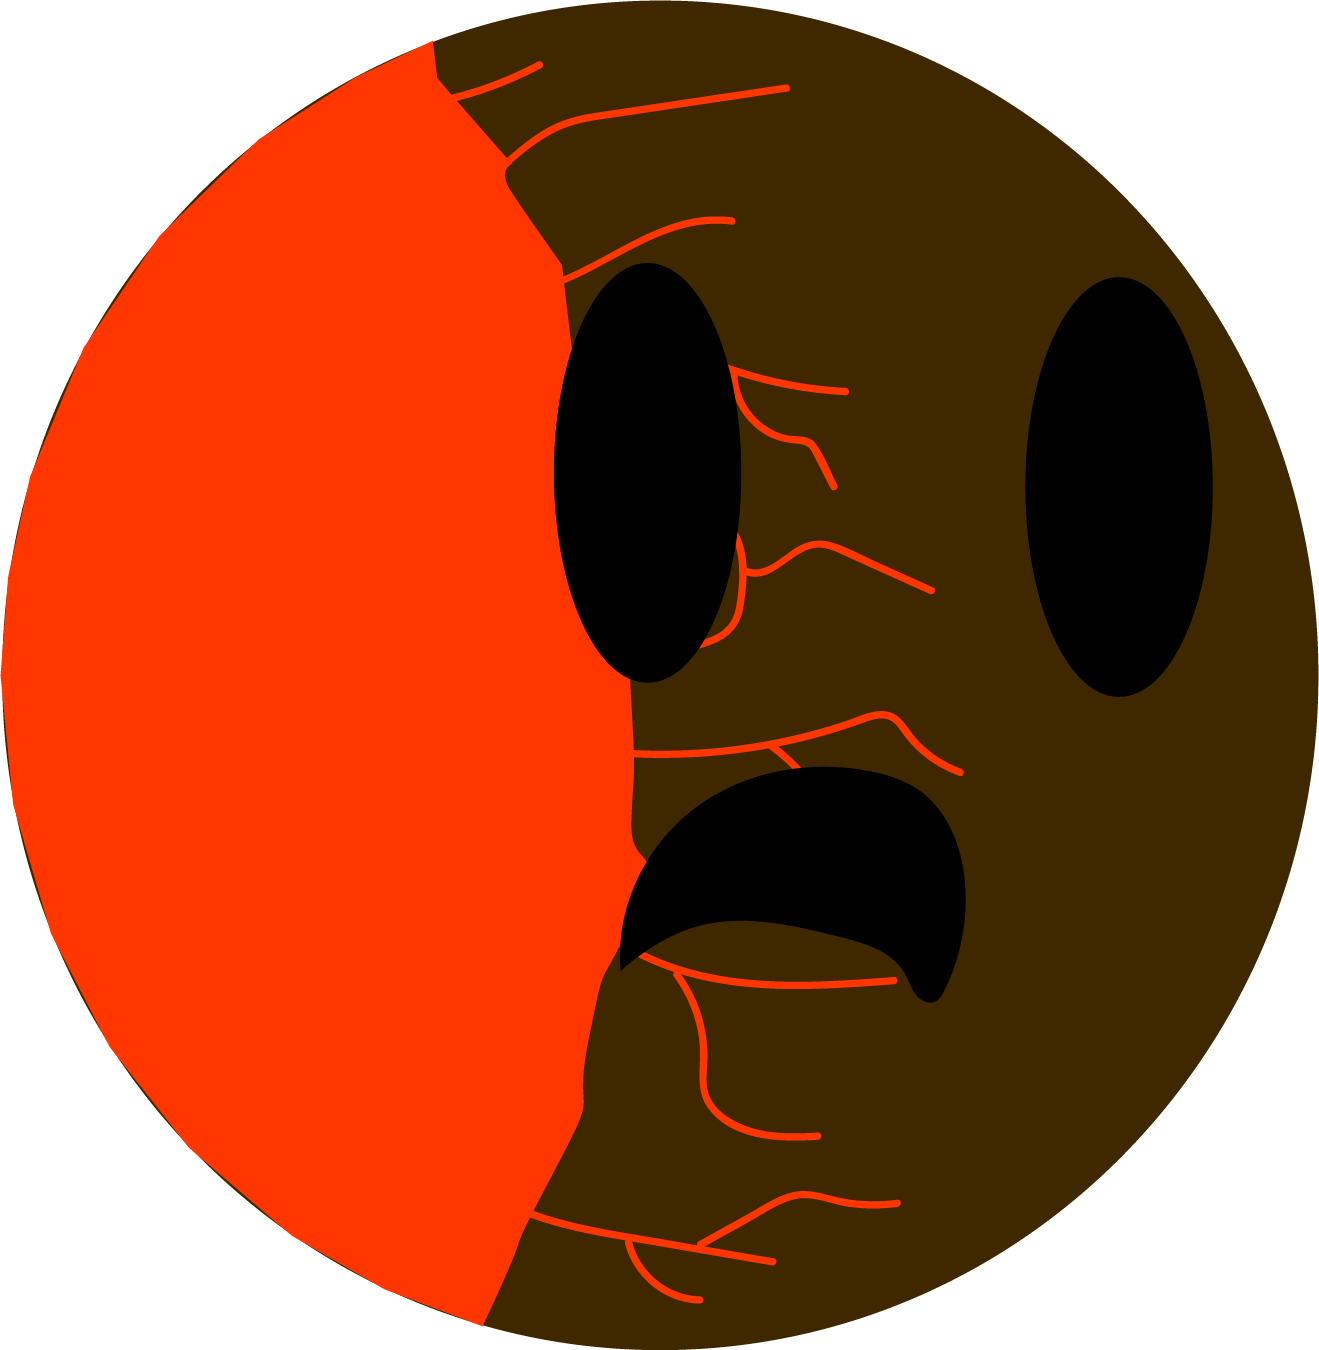 Lava simple cosmos wiki. Planets clipart terrestrial planet